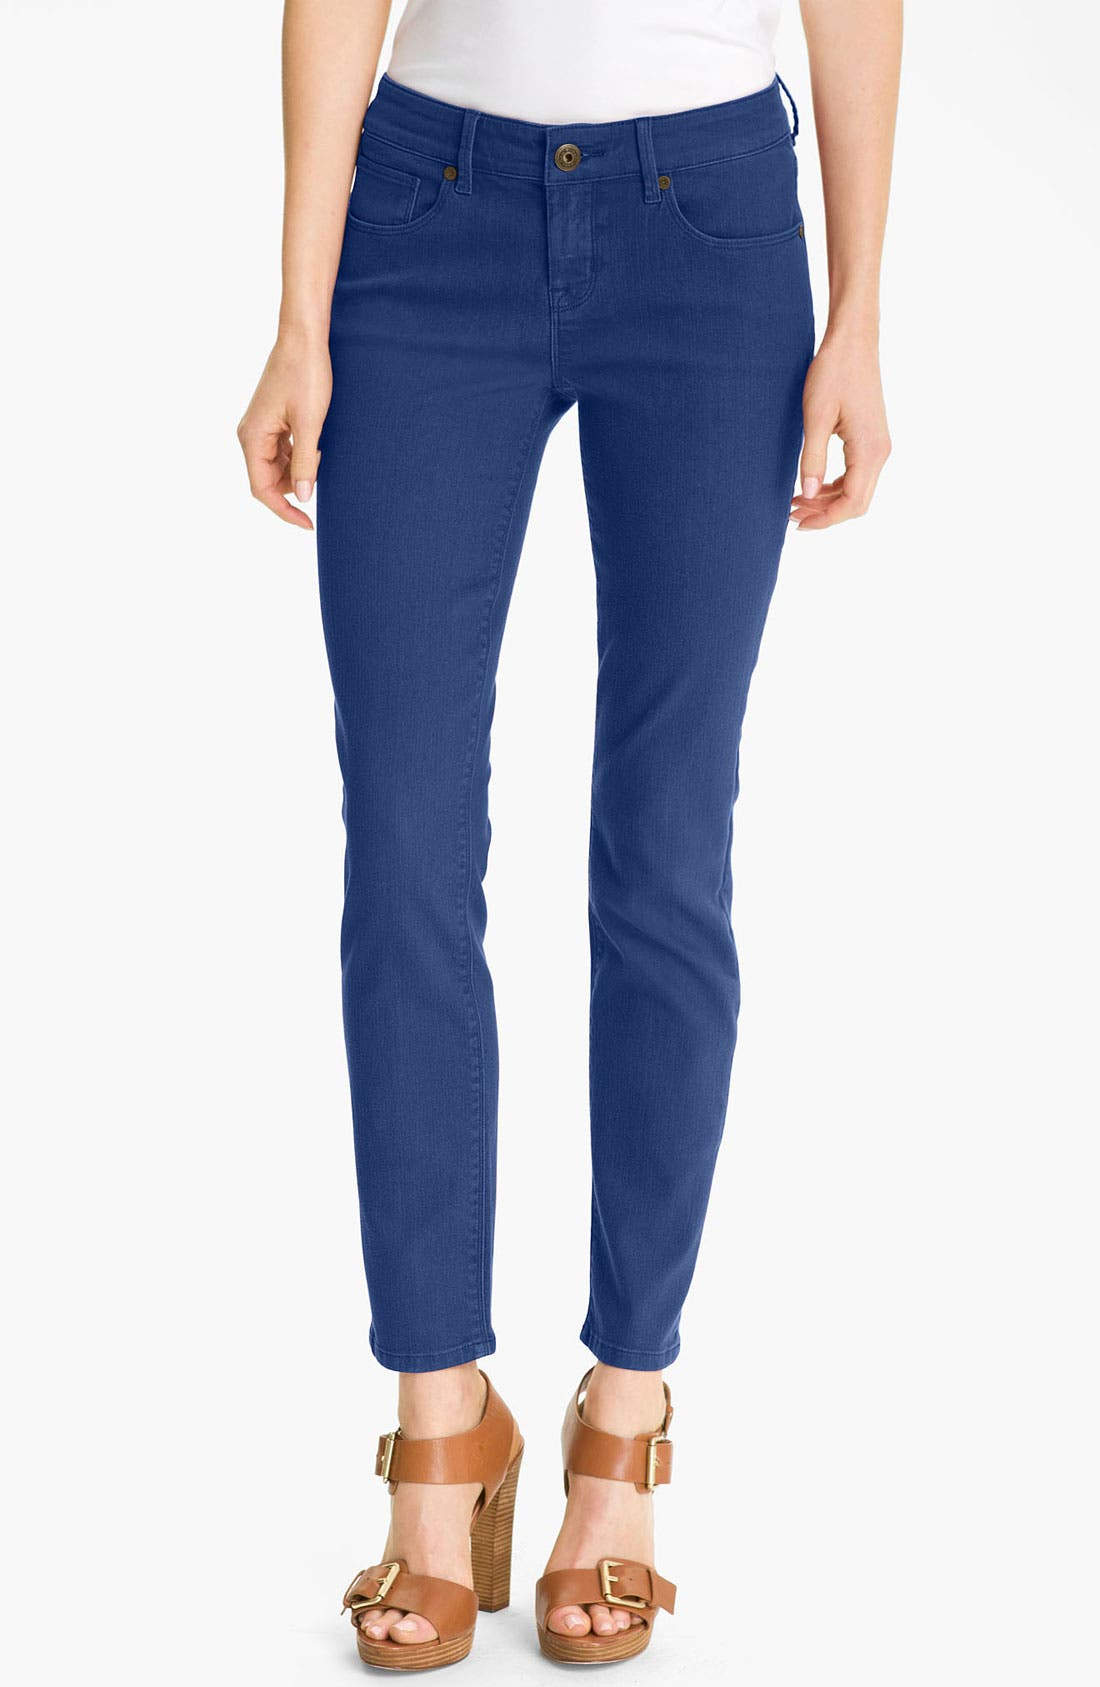 Alternate Image 1 Selected - Isaac Mizrahi Jeans 'Samantha' Colored Denim Skinny Jeans